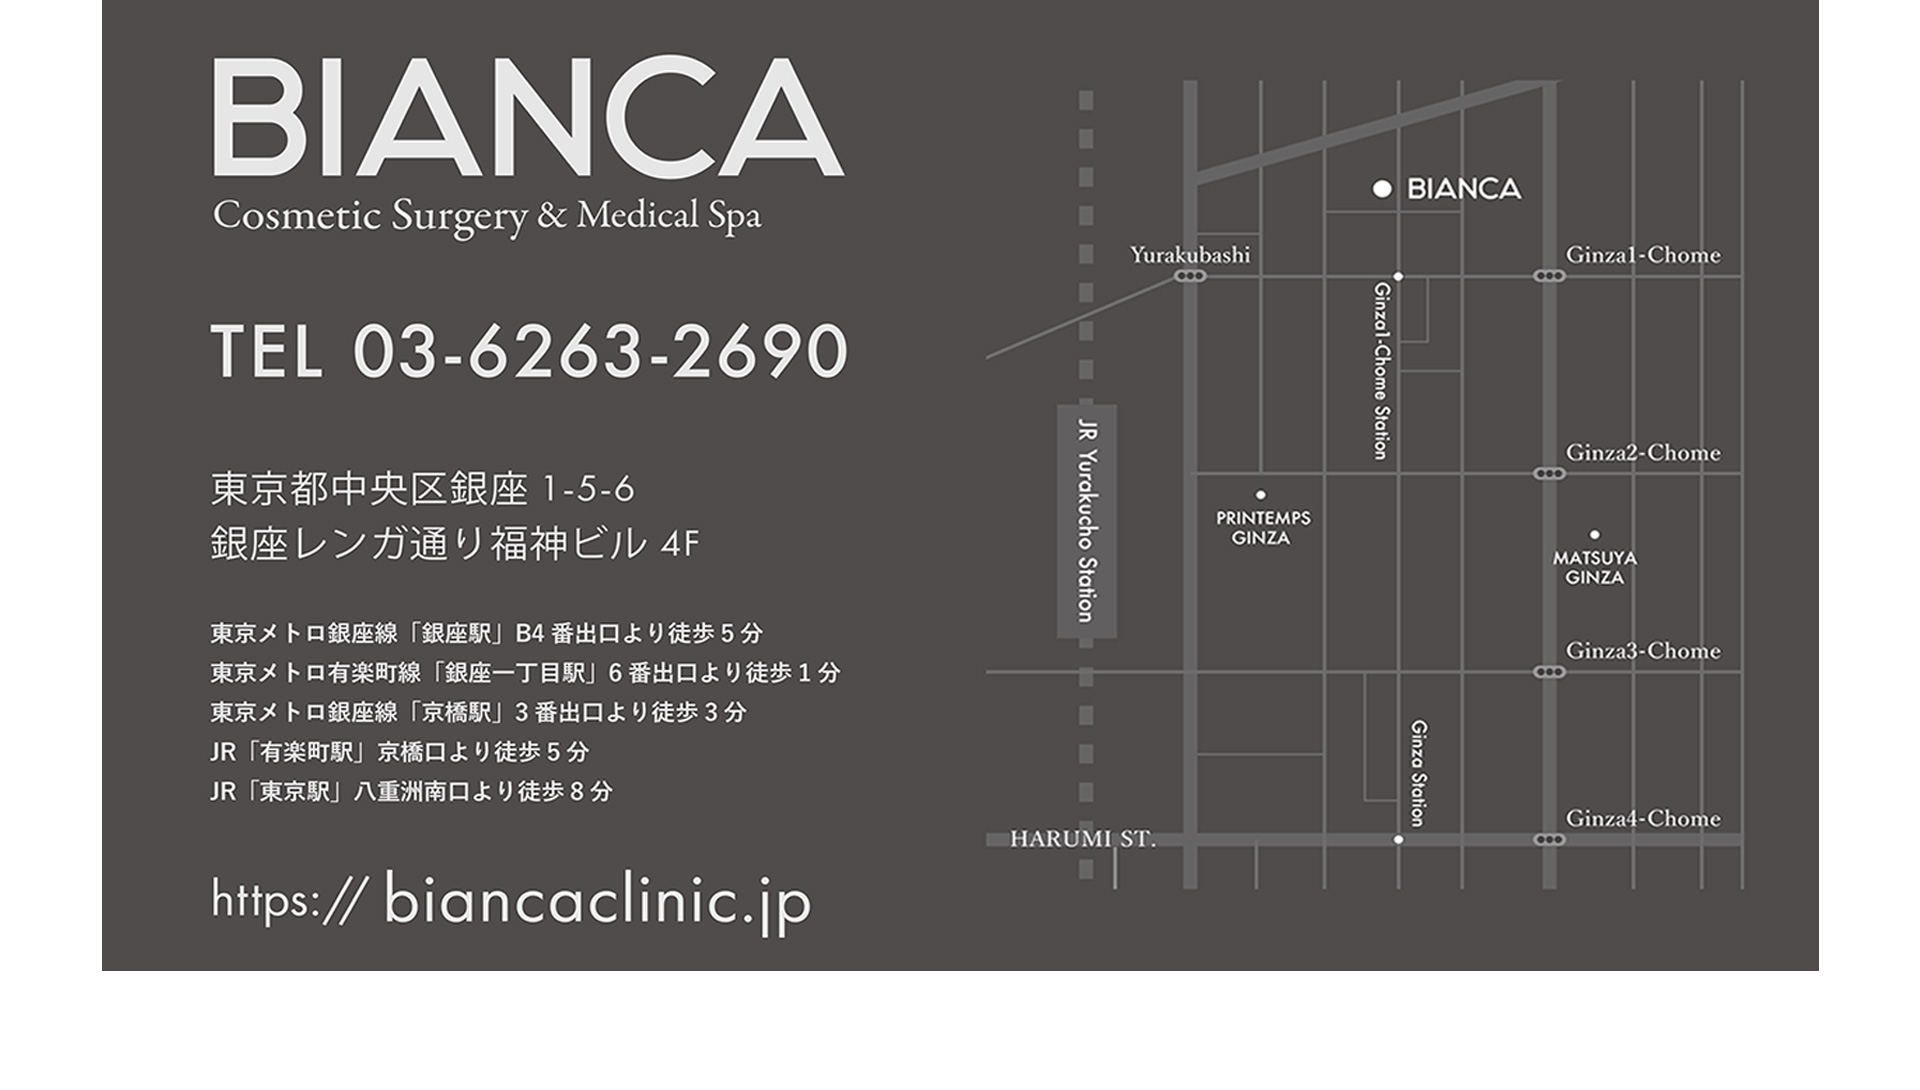 BIANCA Cosmetic Surgery & Medical Spa TEL:03-6263-2690